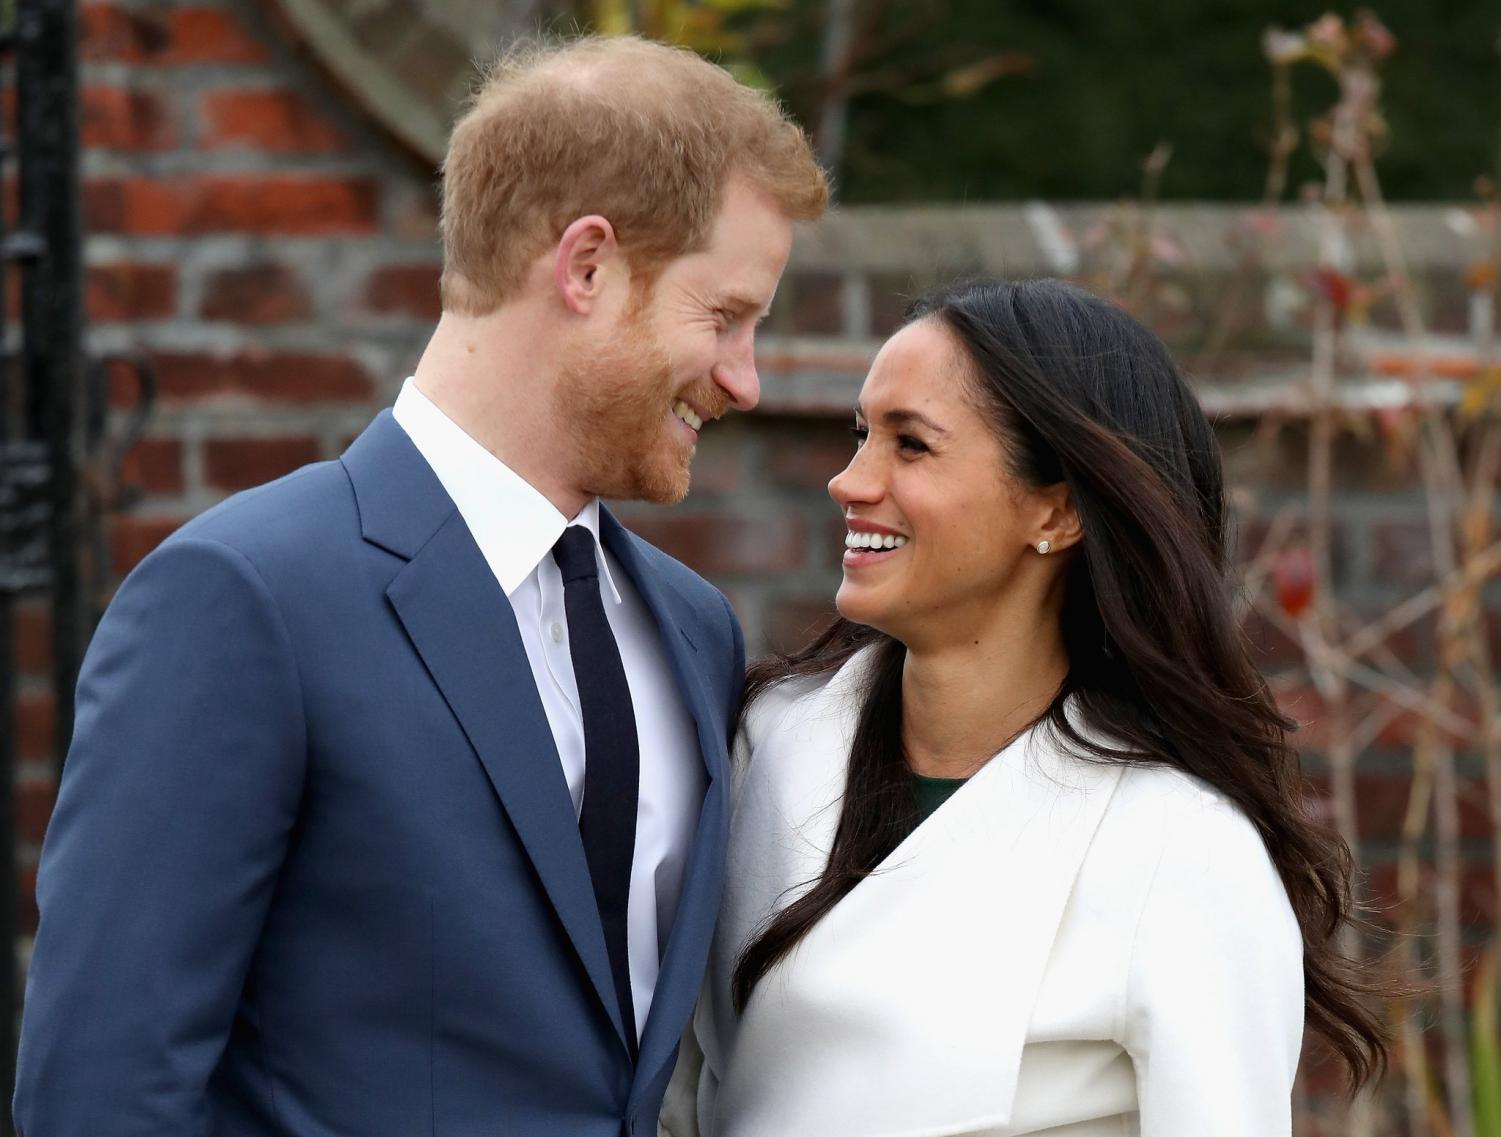 Meghan Markle and Prince Henry gaze into each others' eyes as their engagement is announced.